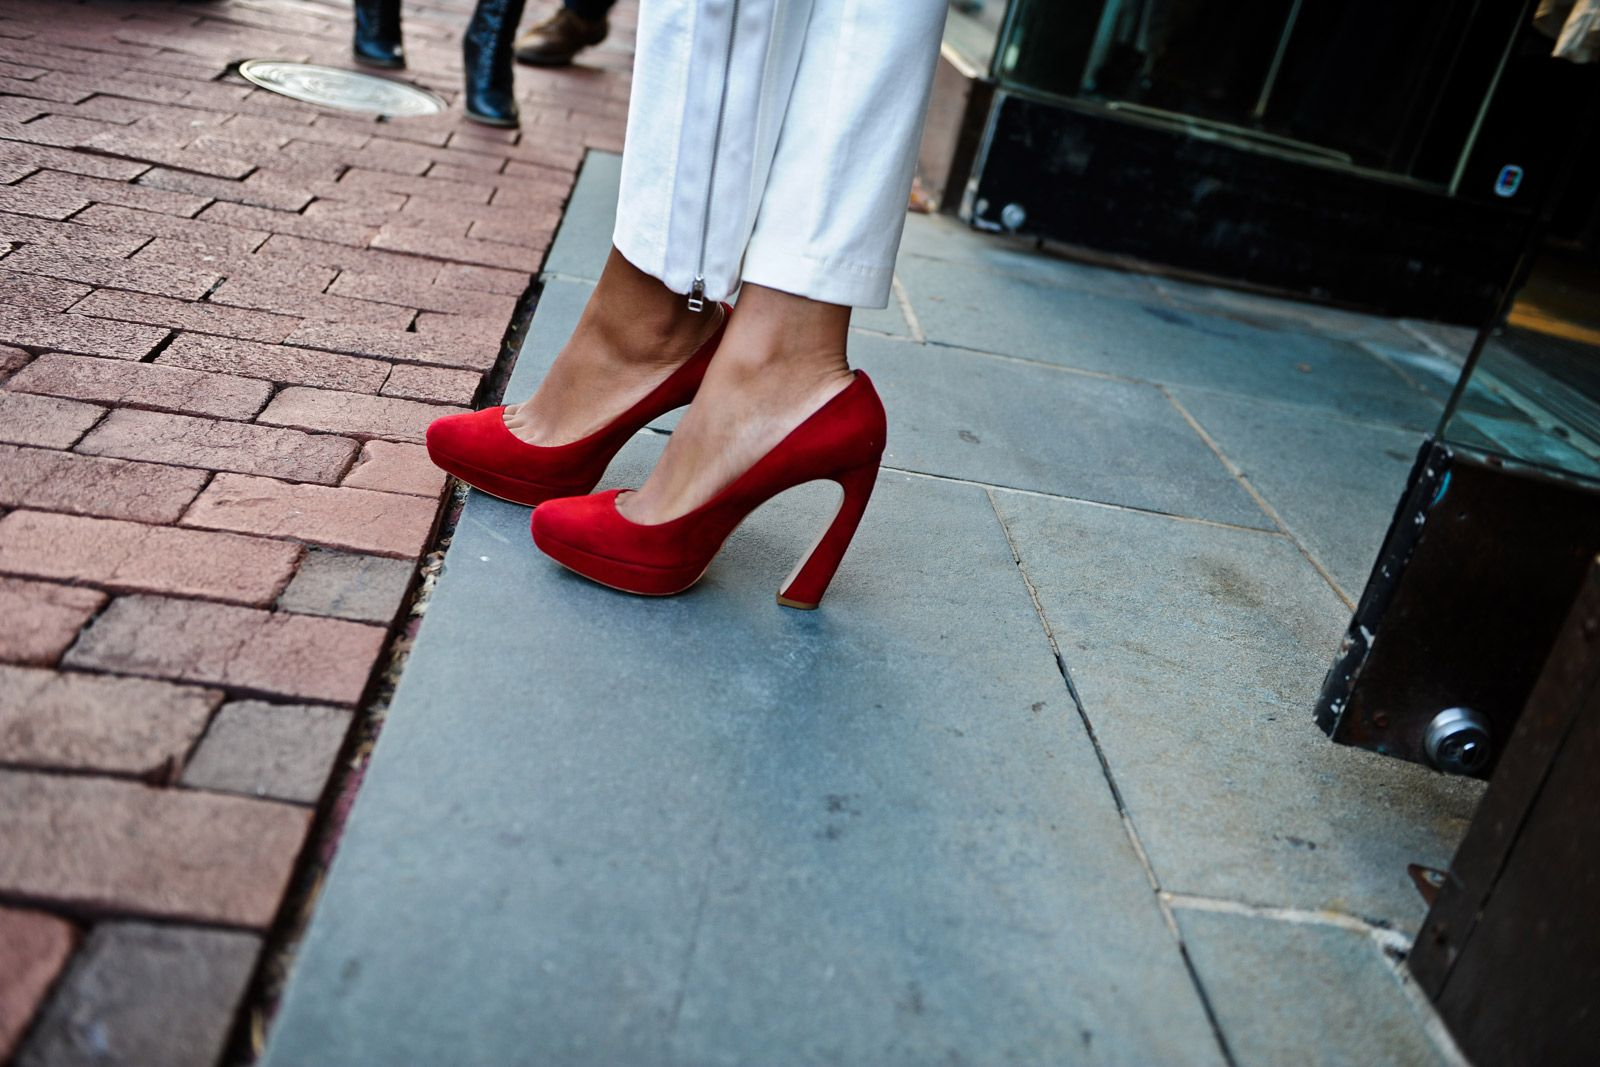 Album Of Awesome: 28 So-Rad Party Pics From Fashion's Night Out #refinery29  http://www.refinery29.com/fashions-night-out-dc#slide16  The architectural heel on these crimson pumps is just so perfect.